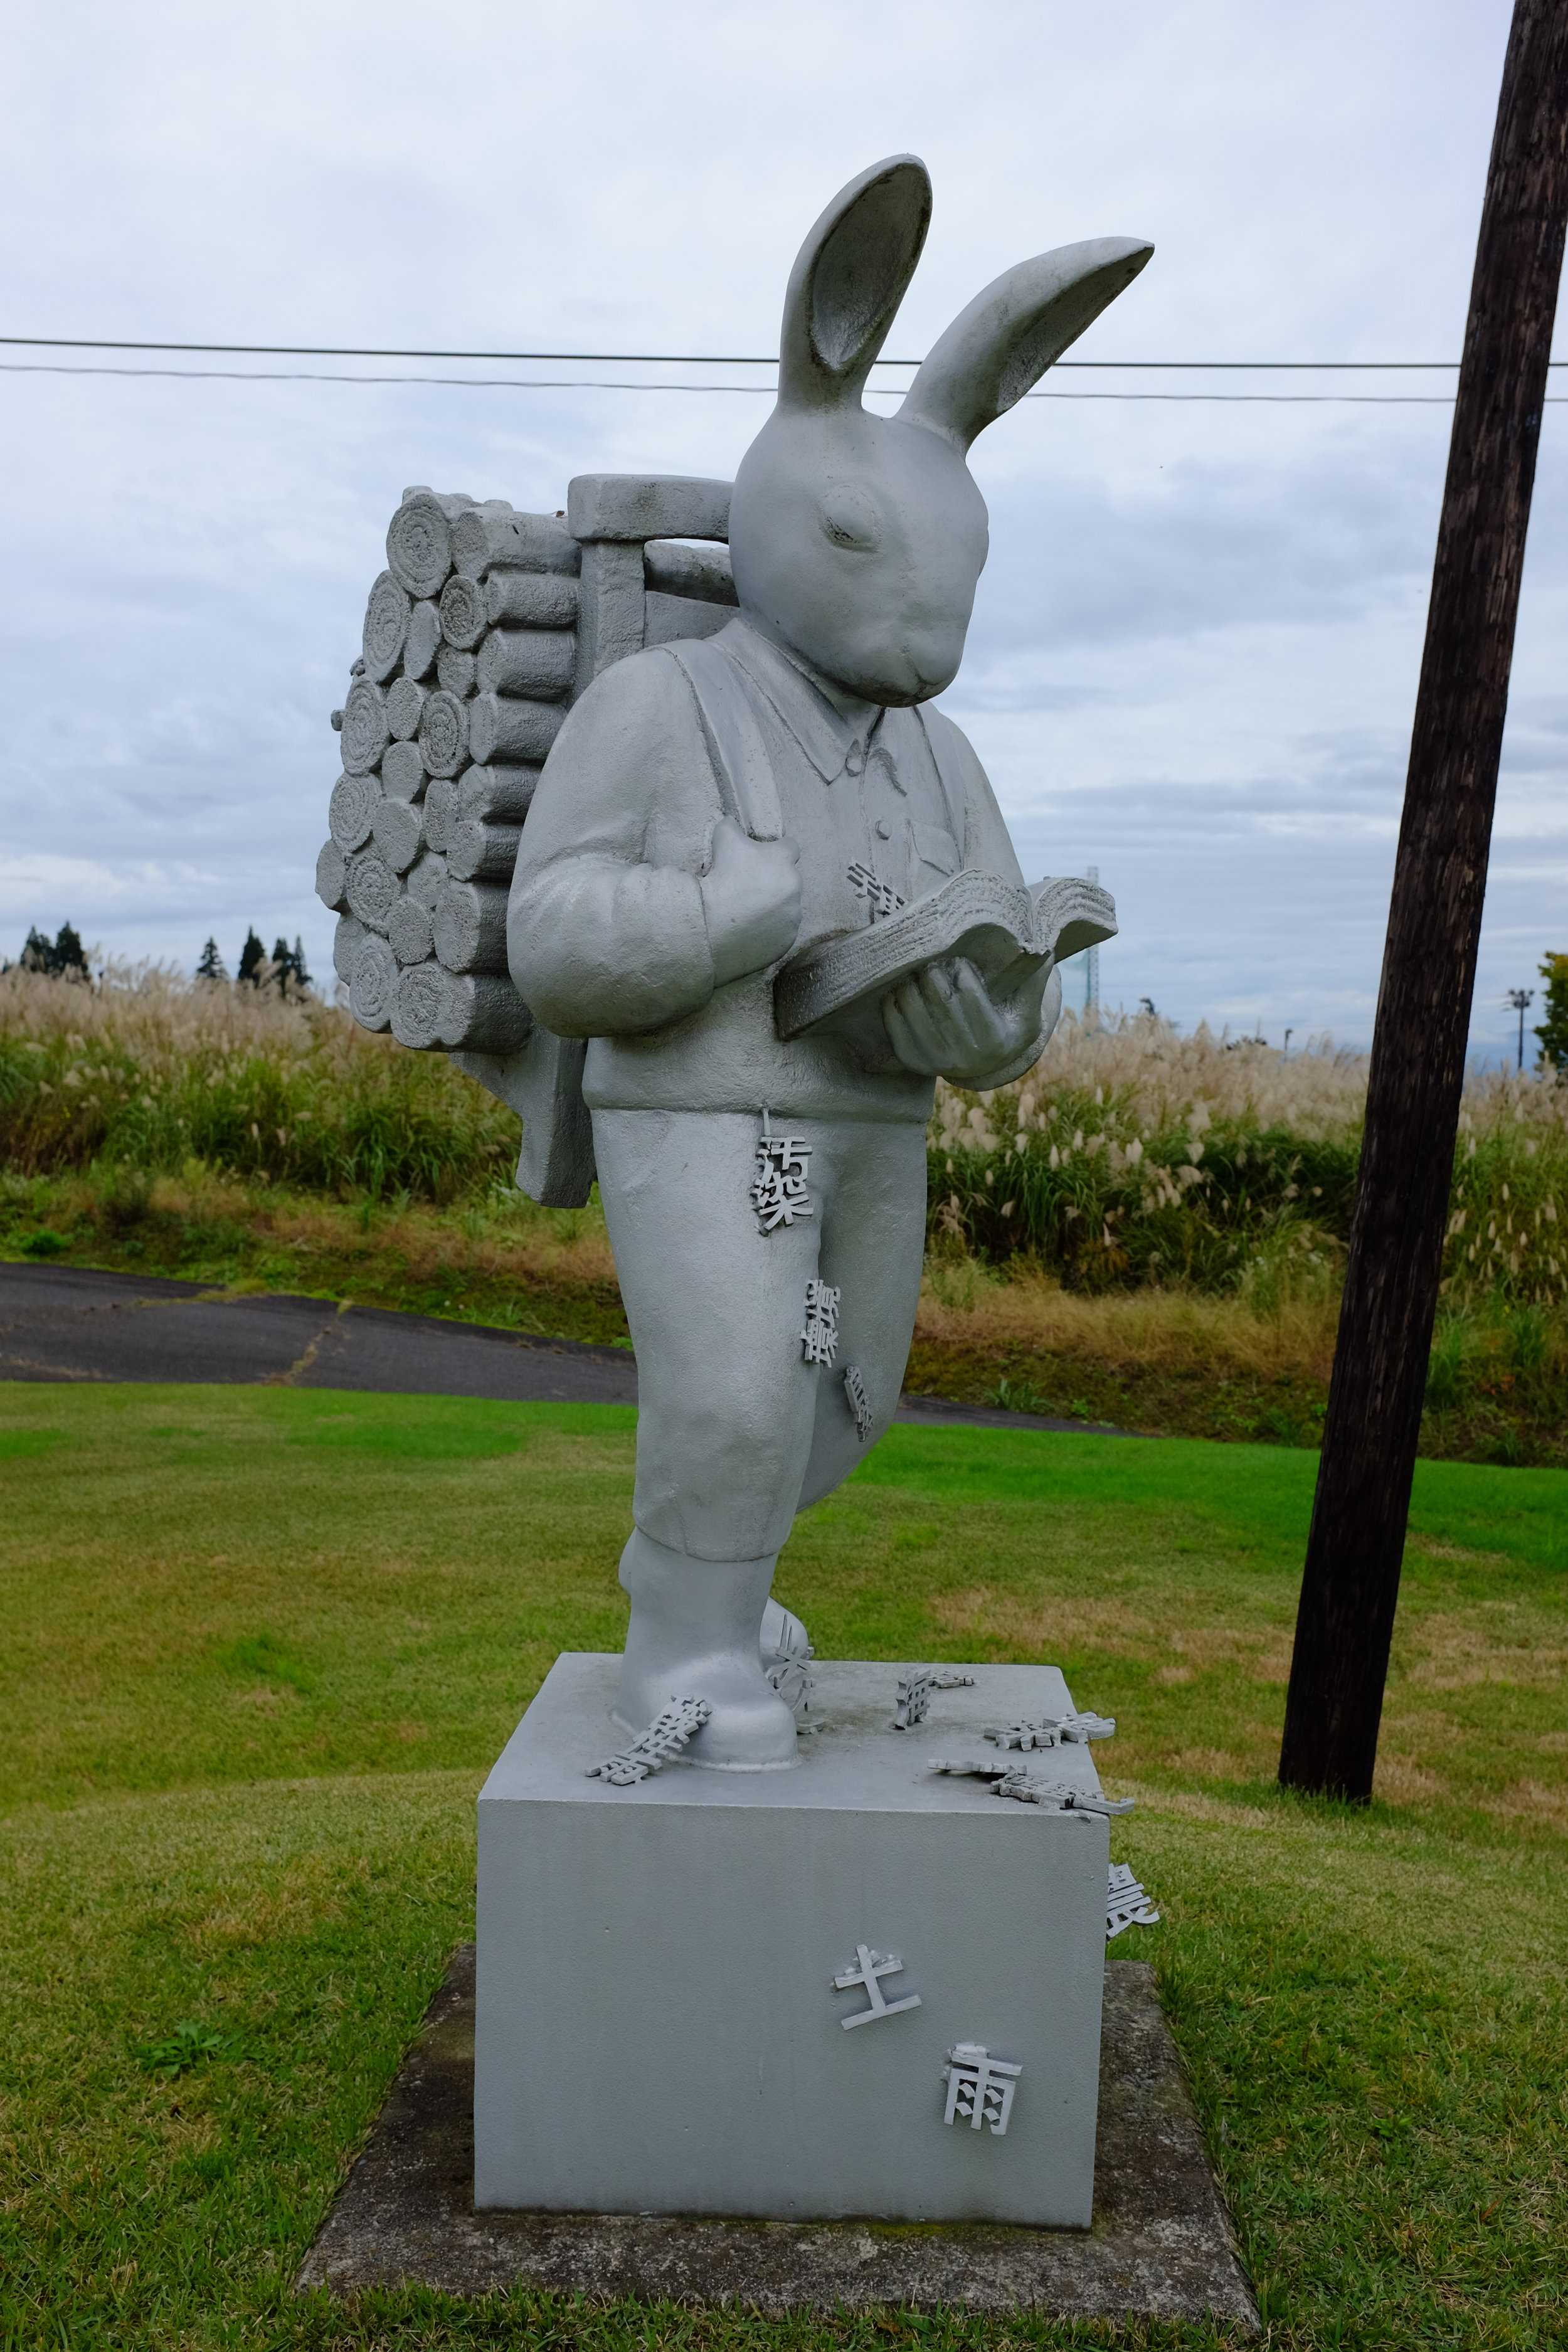 I did find these statues delightfully absurd.